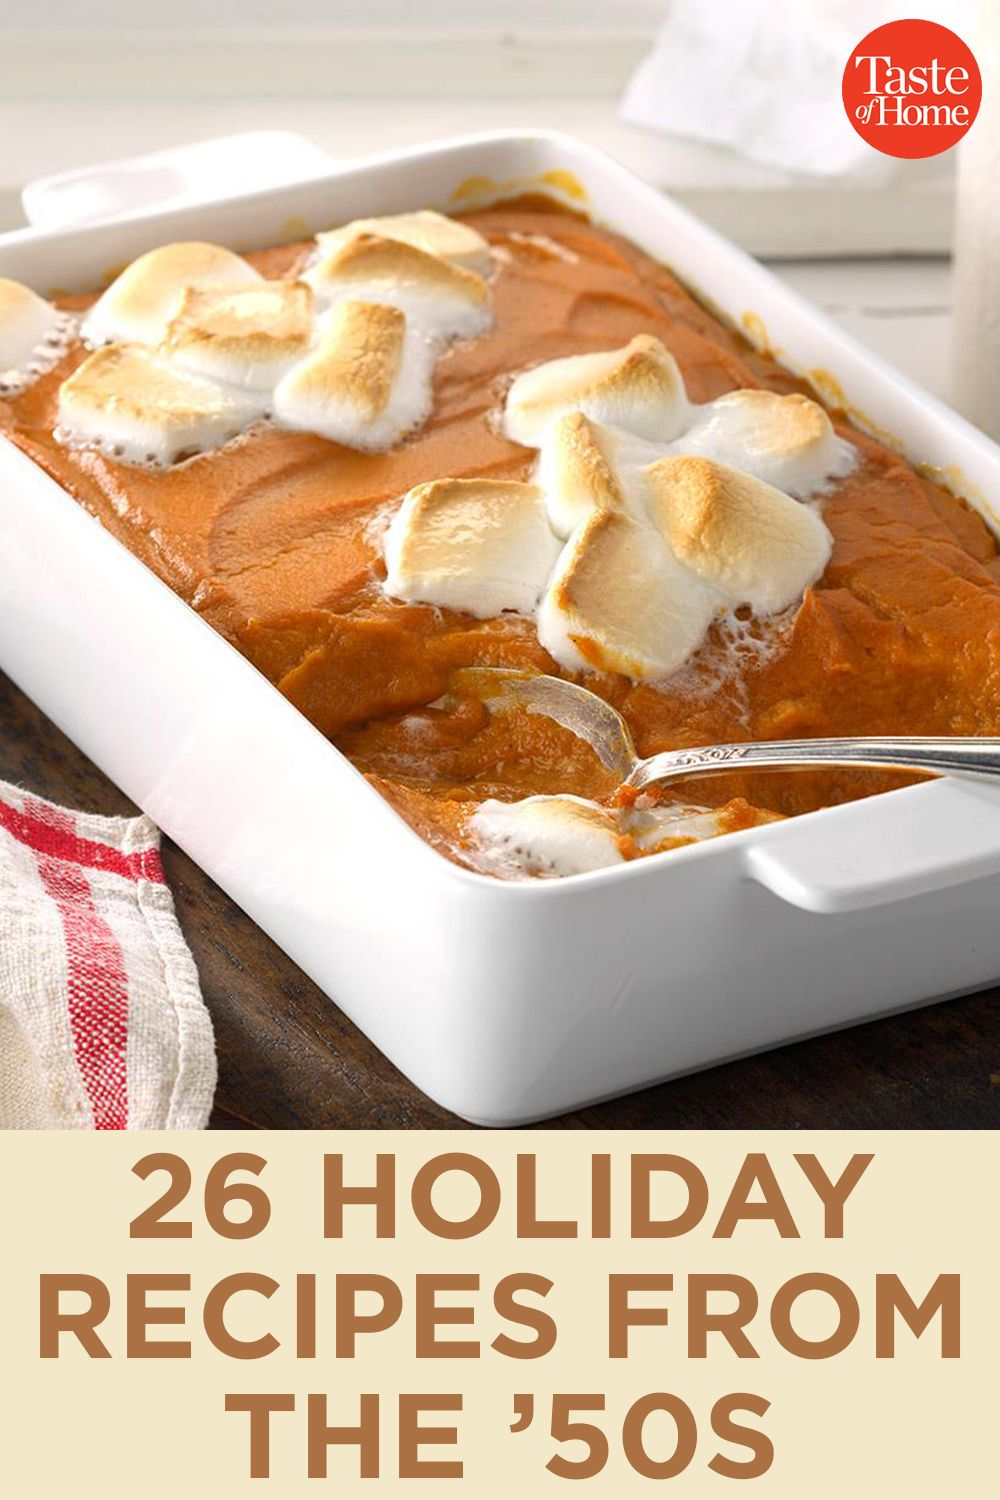 26 Holiday Recipes from the '50s